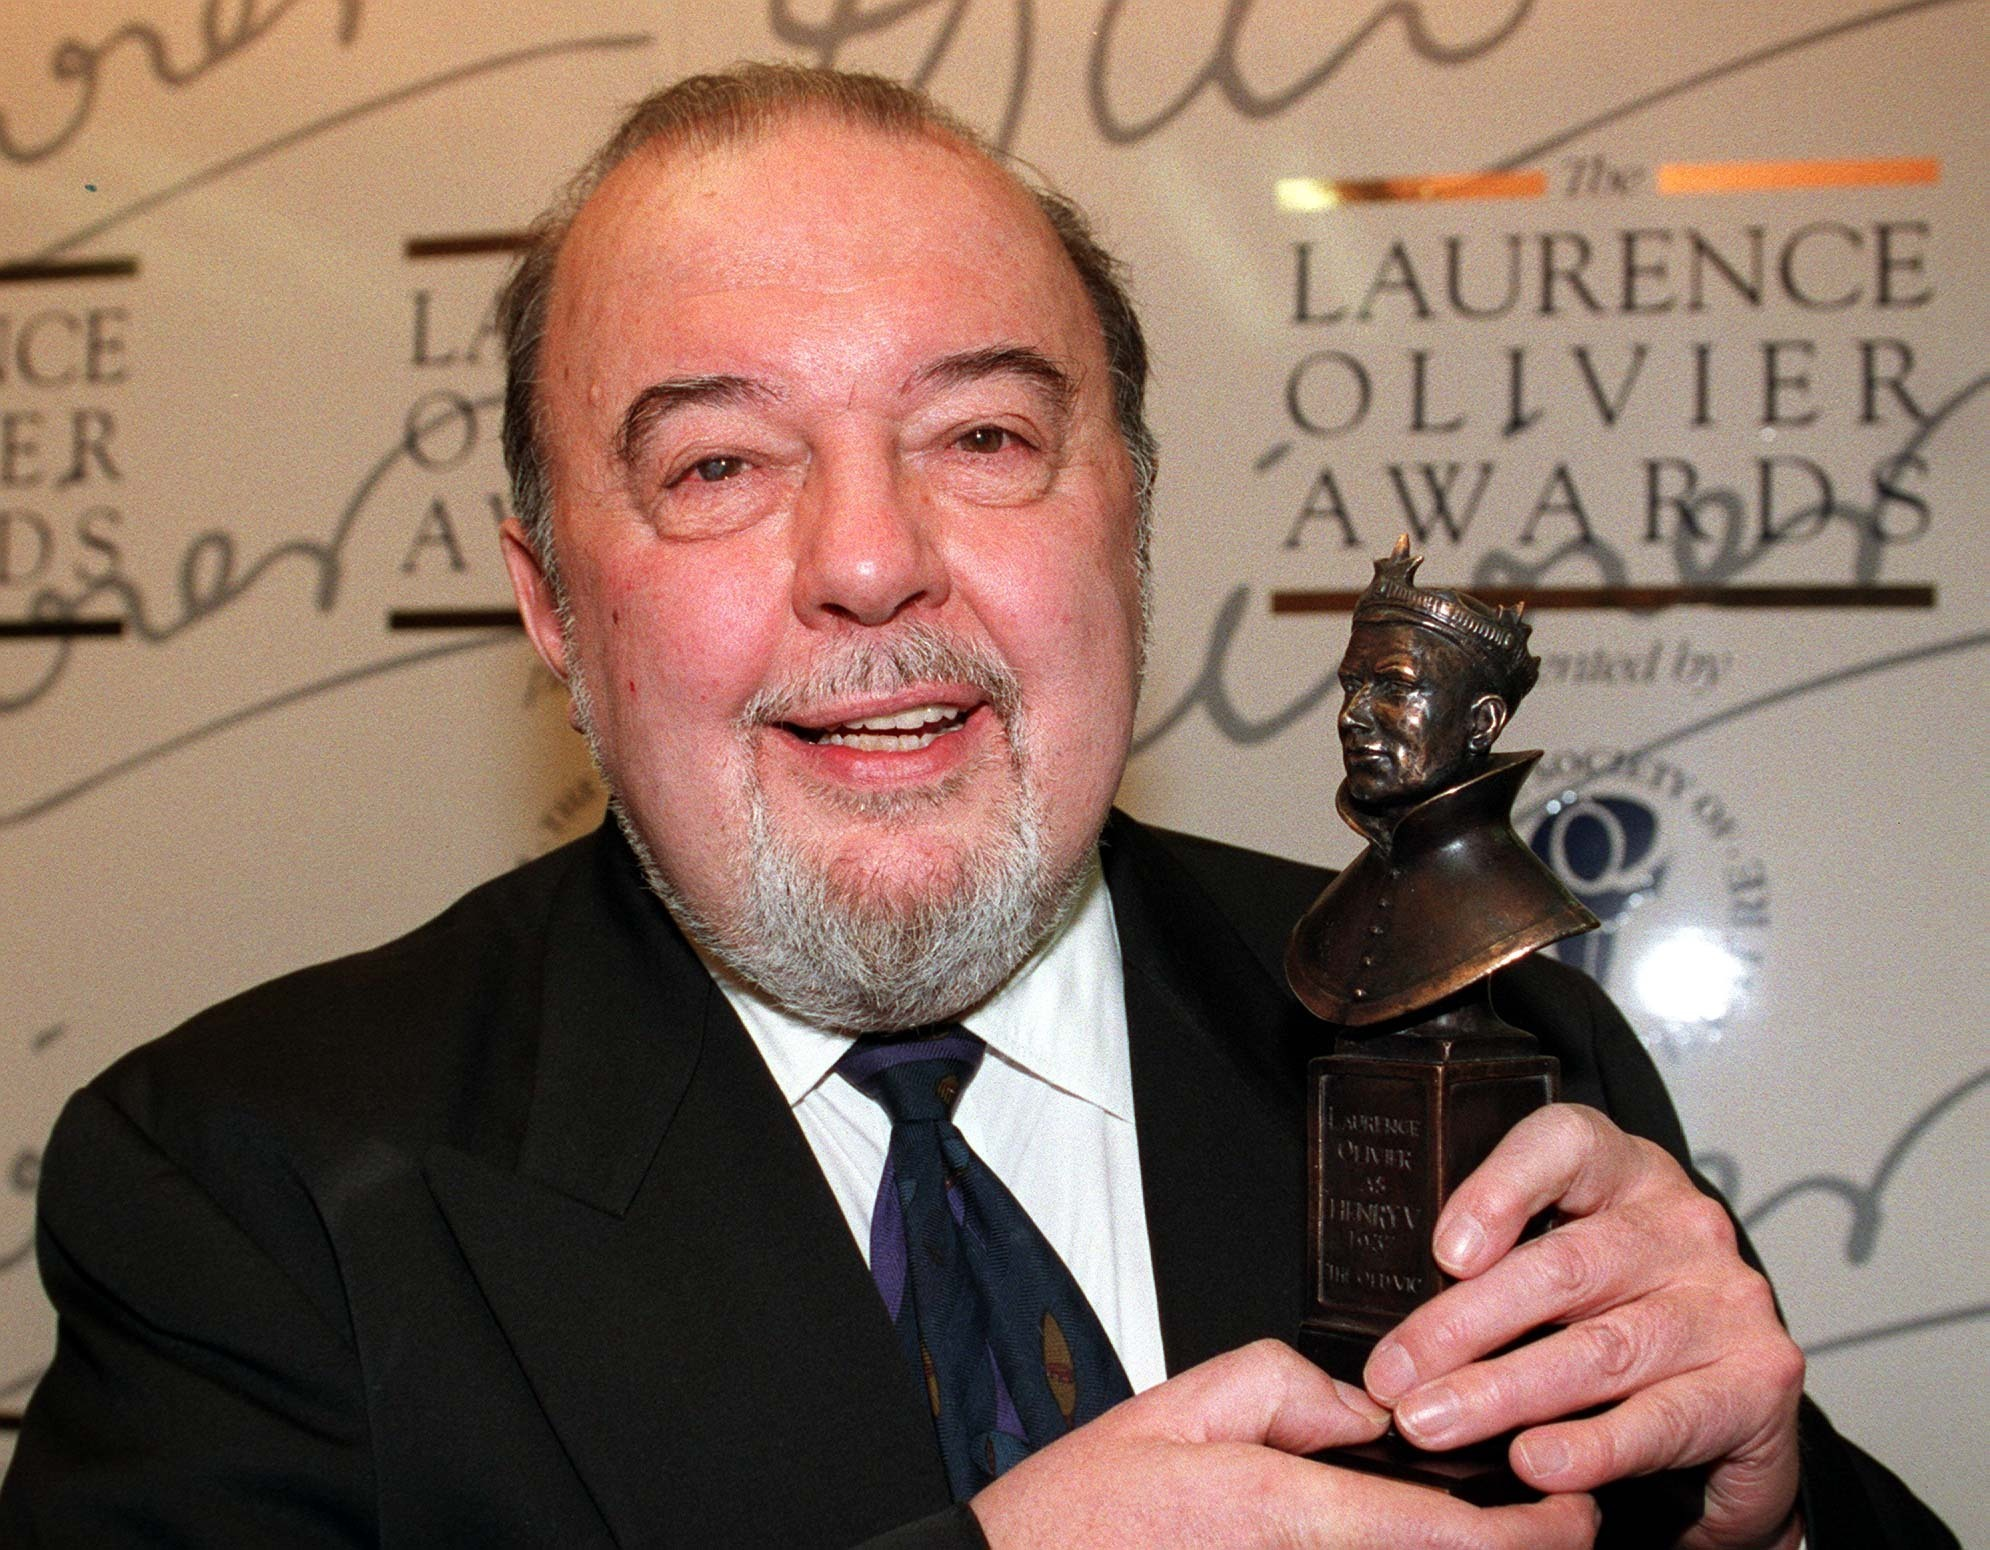 Sir Peter Hall, the former director of the National Theatre, has died at the age of 86.